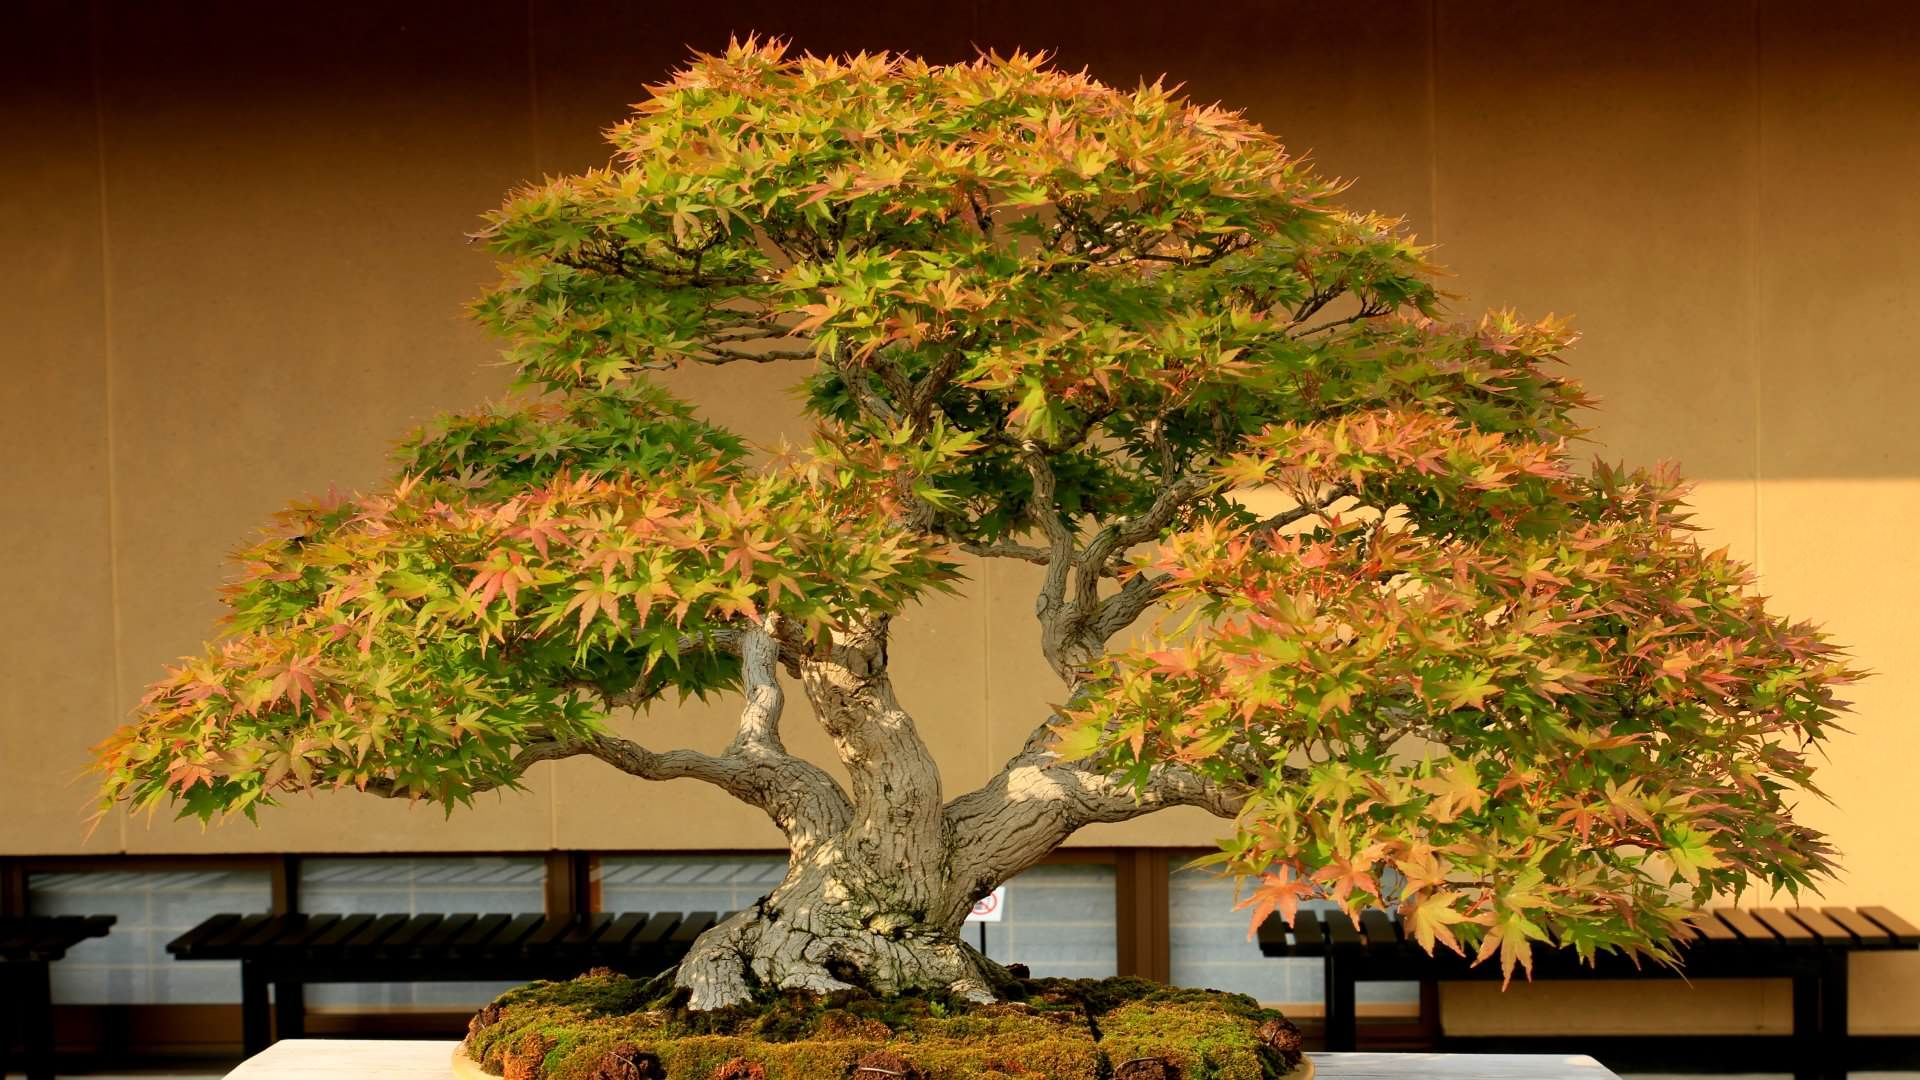 Bonsai Tree Grown In Container Hd Wallpapers 19201080 Via Classy Bro Japanese Bonsai Bonsai Tree Bonsai Art